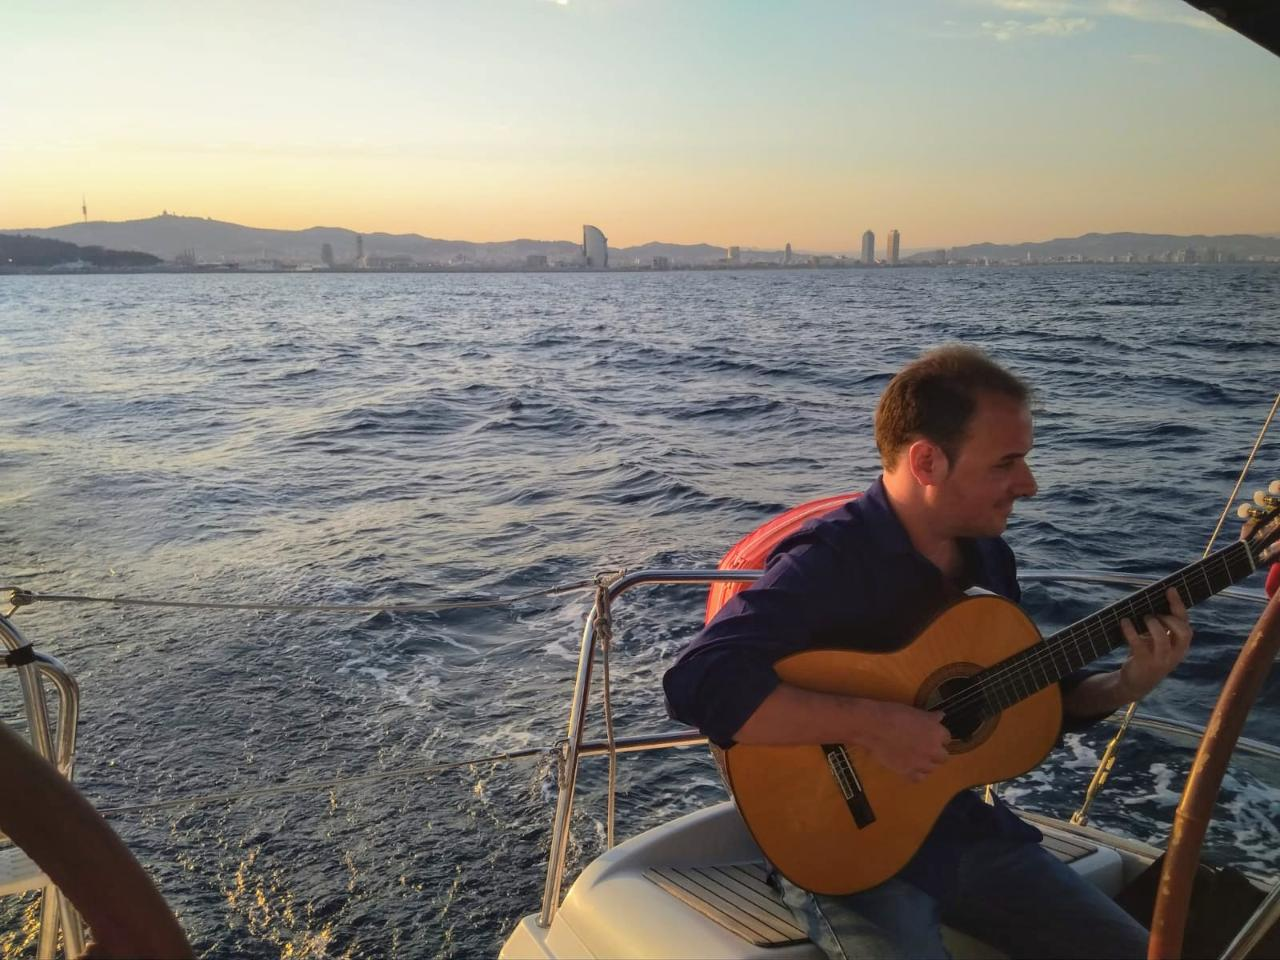 Spanish Guitar Live & Sailing Experience BCN From Ṕort Vell